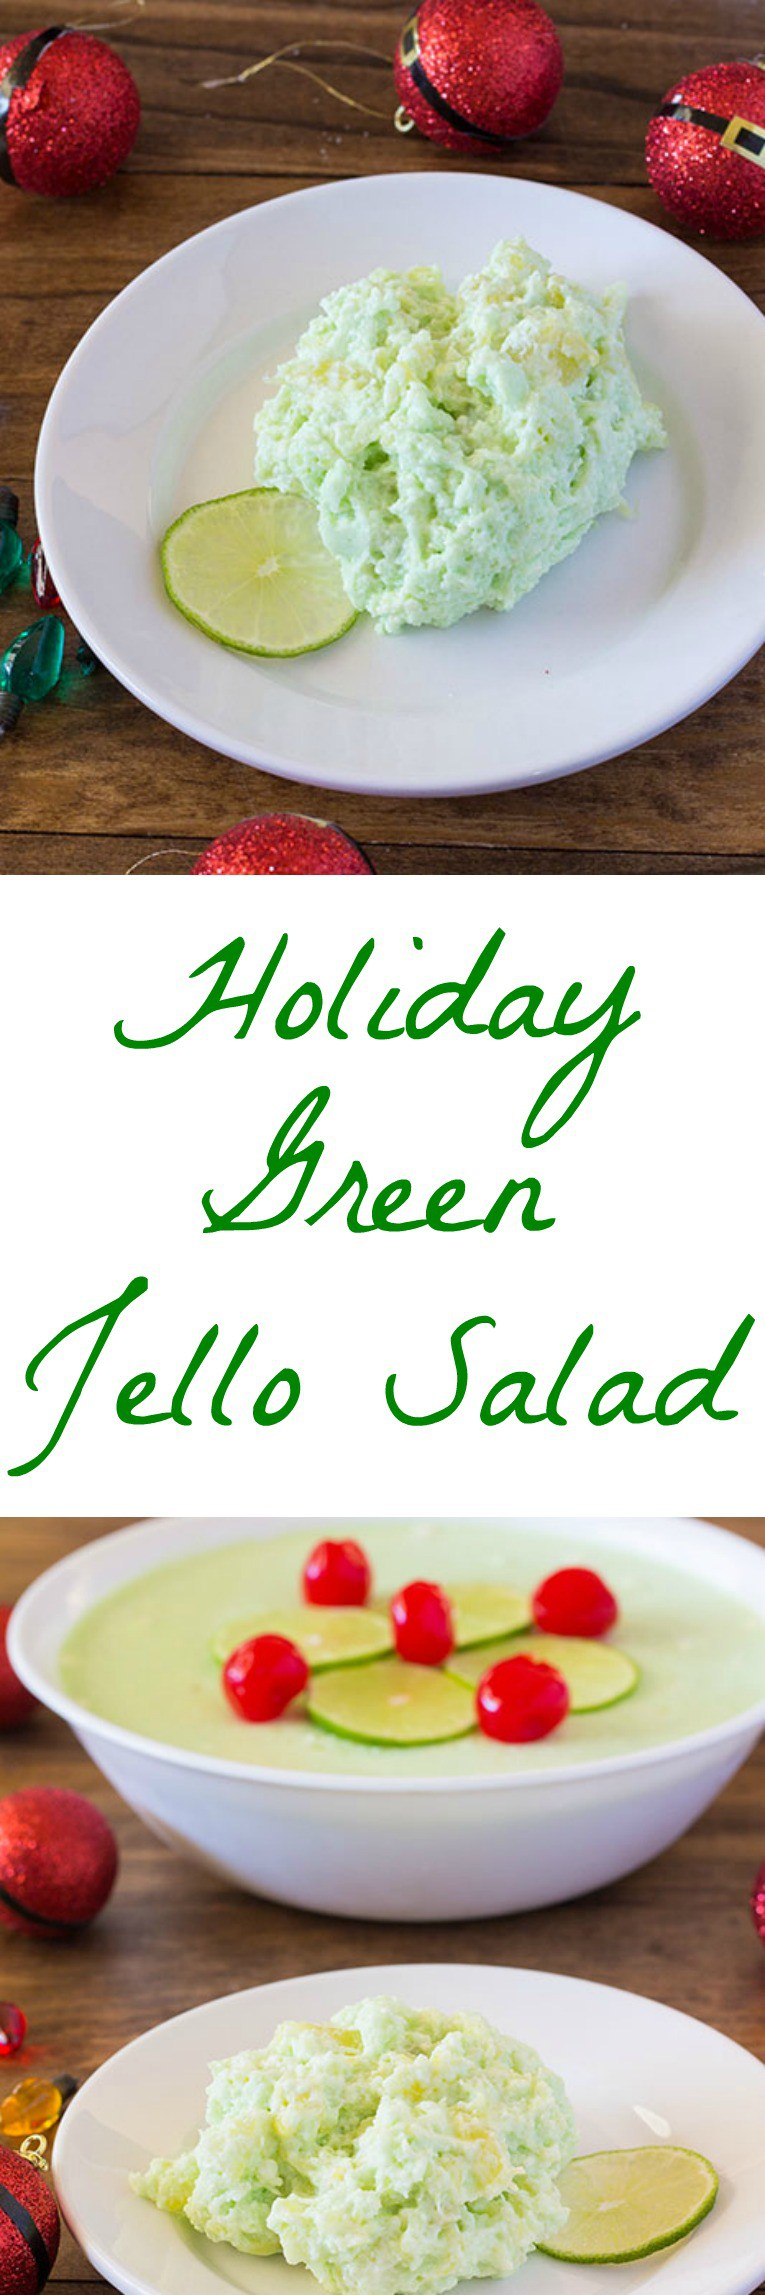 Vintage Jello Salad recipe using jello, pineapple, cream cheese, and whipped topping.